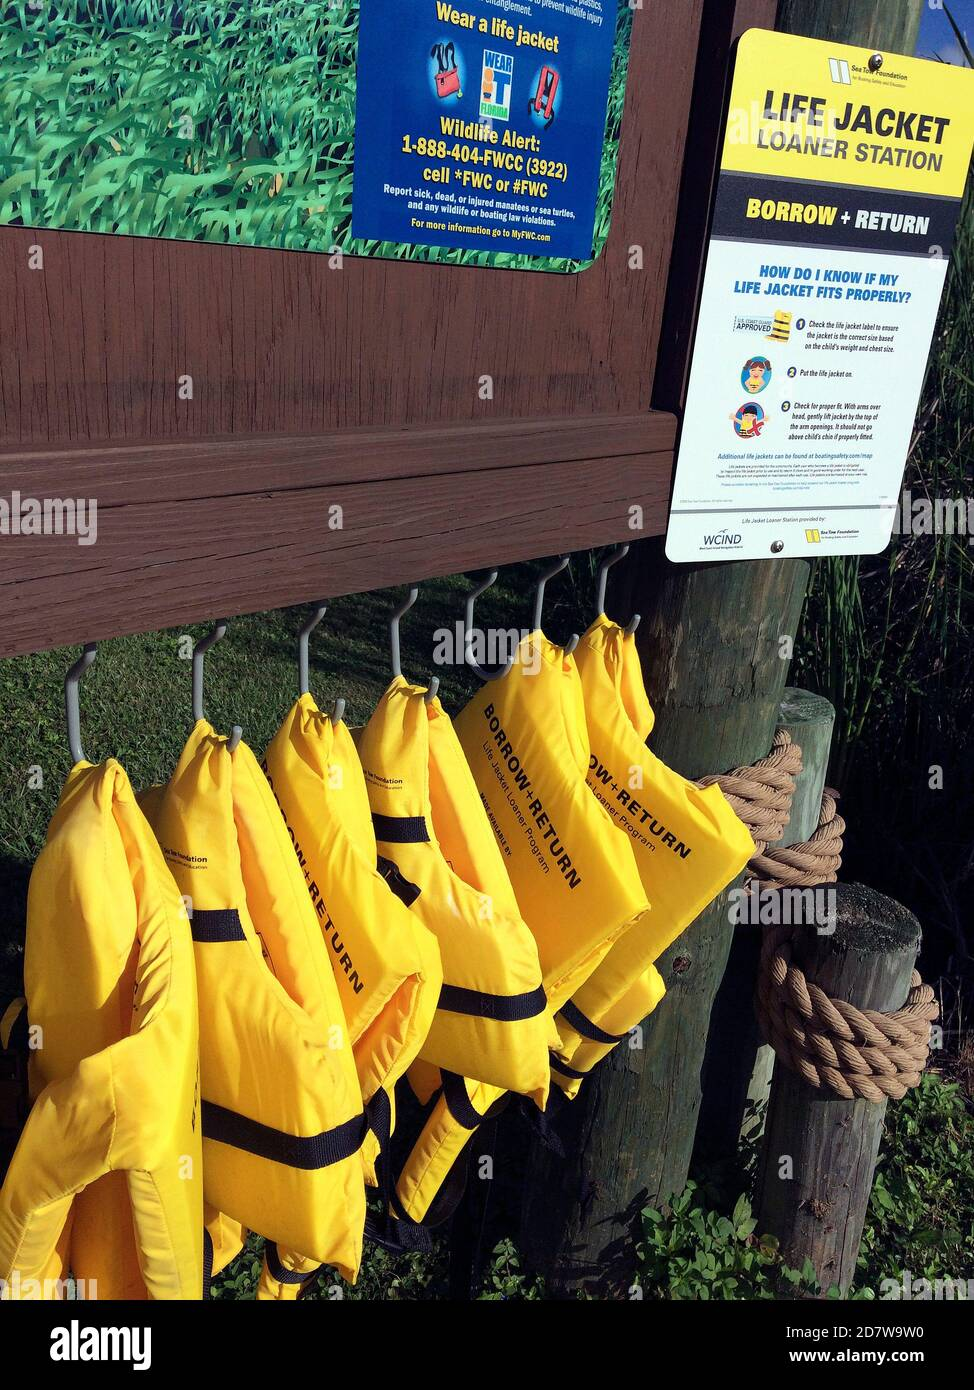 A row of bright yellow life jackets awaits boaters who have forgotten to bring a personal flotation device that helps ensure their safety at sea in the Gulf of Mexico along the west coast of Florida, USA. The buoyant vests are offered free of charge as part of a Borrow and Return program by the Sea Tow Foundation and the West Coast Inland Navigation District (WCIND). Loaner life preservers are available to prevent drownings in many places in the United States and other countries where recreation on the water is popular. Stock Photo